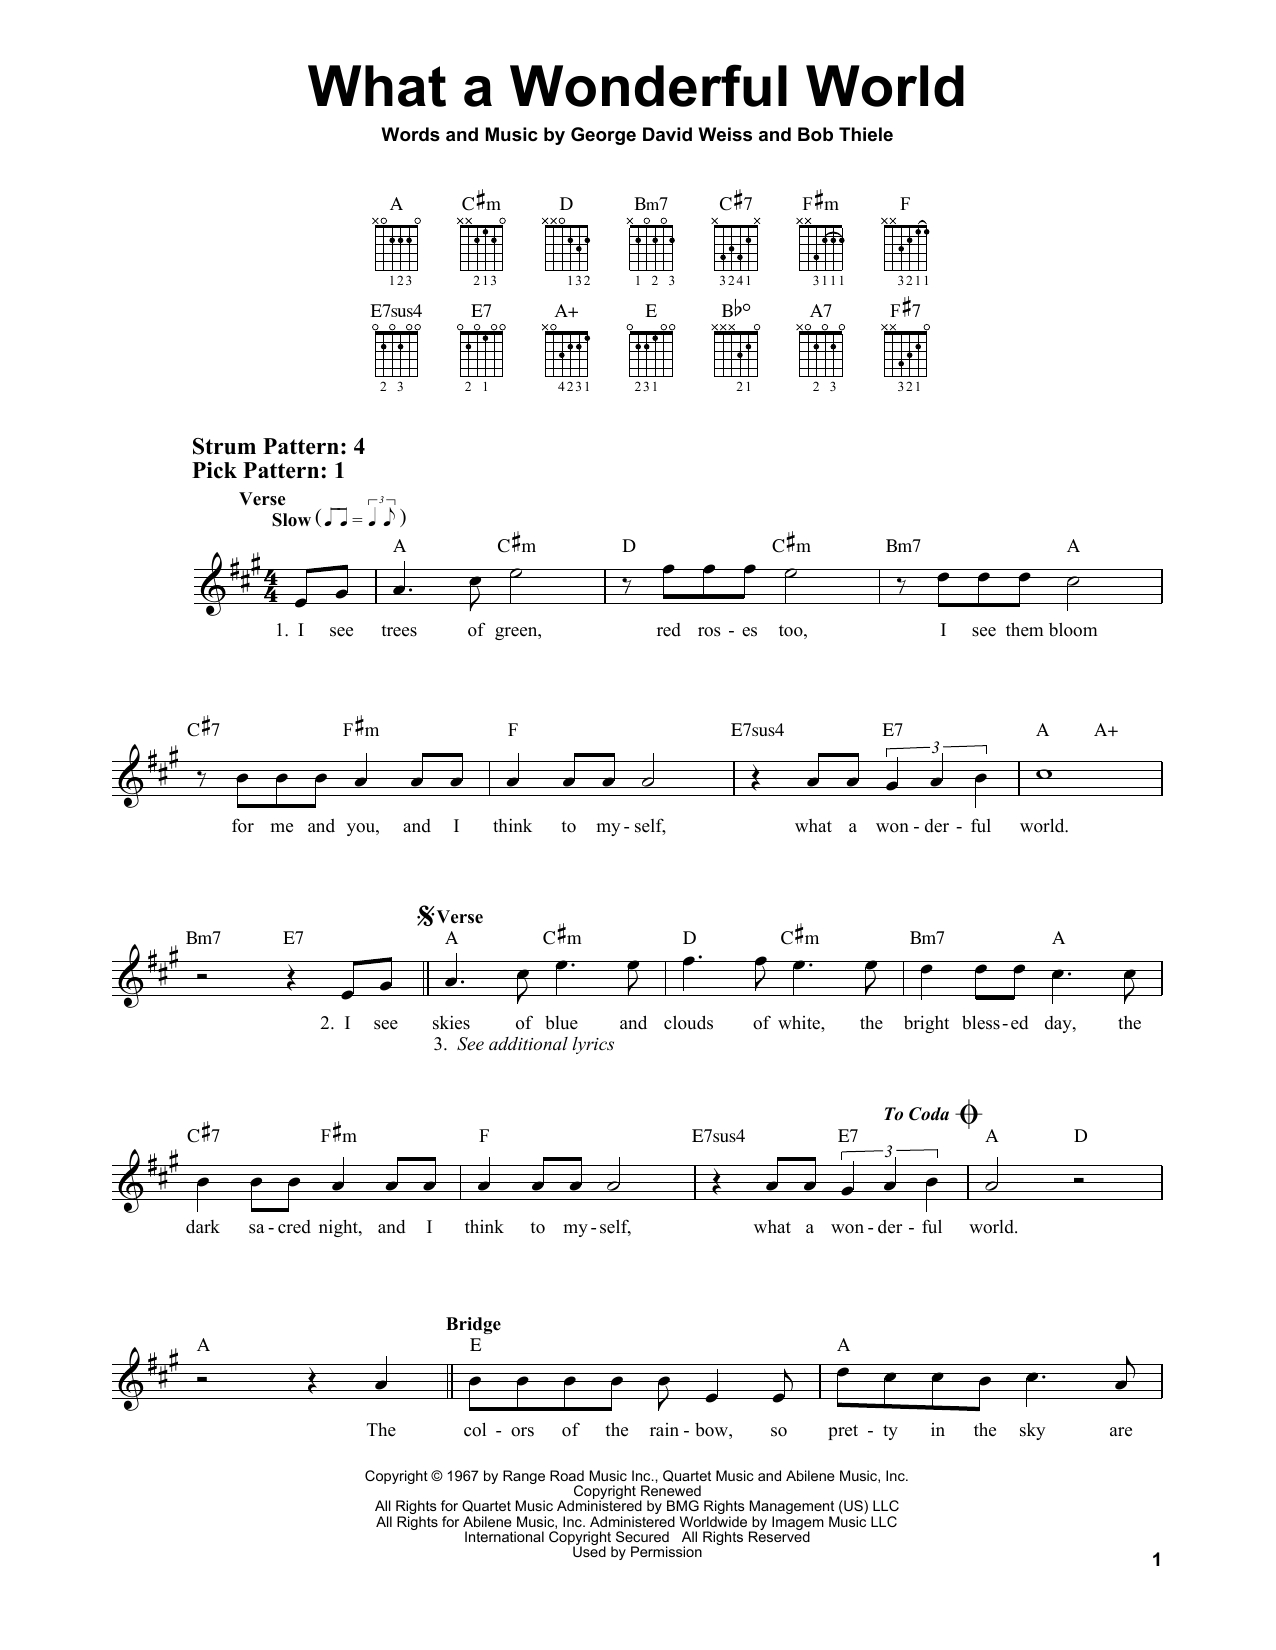 What A Wonderful World Chords Louis Armstrong What A Wonderful World Sheet Music Notes Chords Download Printable Easy Guitar Sku 415731